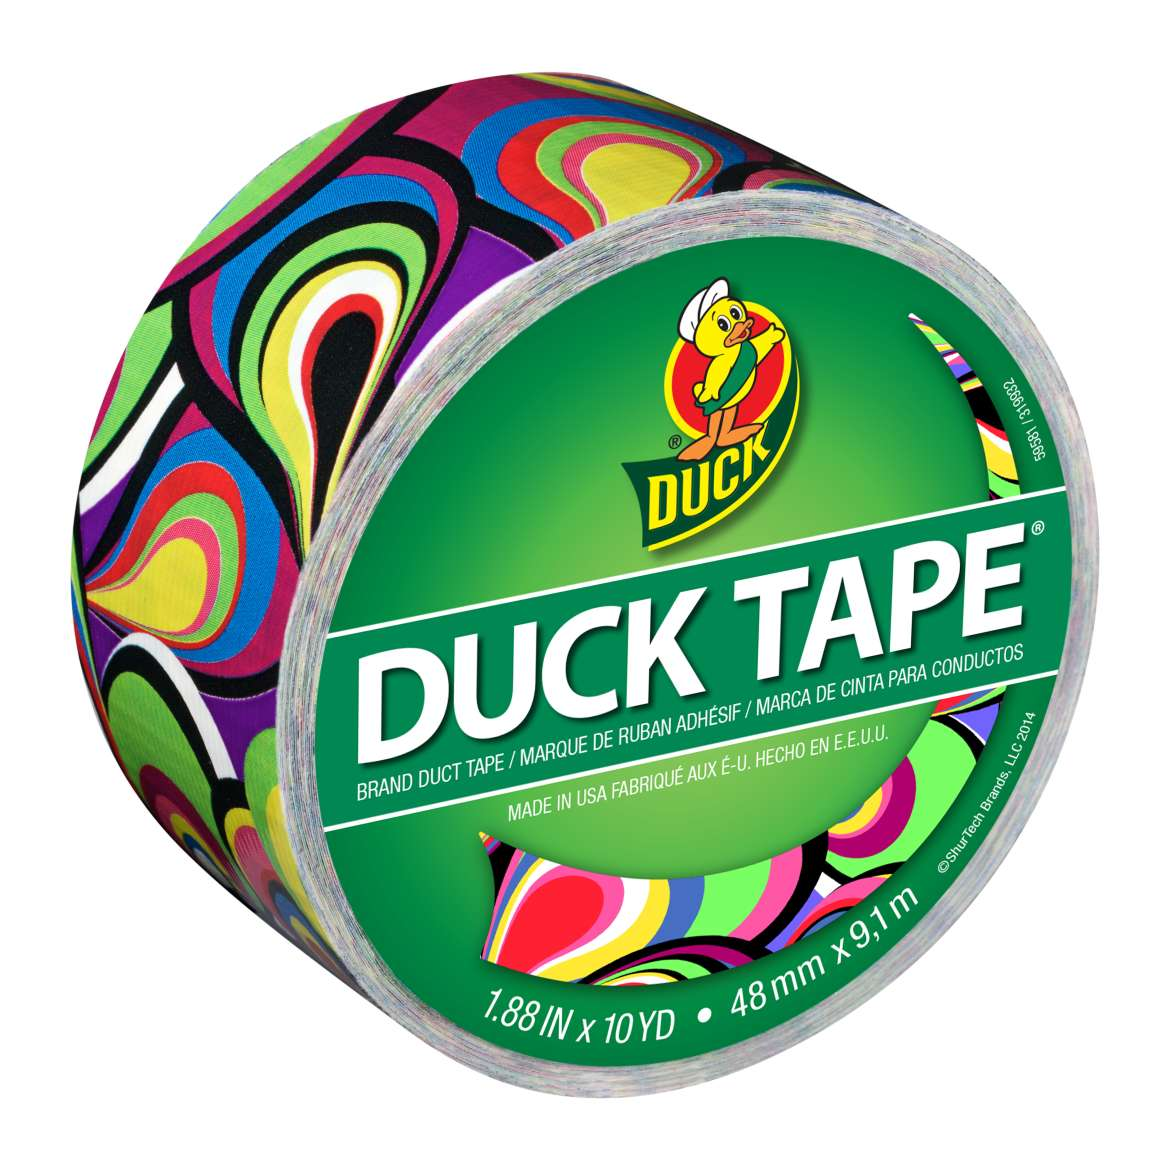 Printed Duck Tape® Brand Duct Tape - Marble Peacock, 1.88 in. x 10 yd. Image